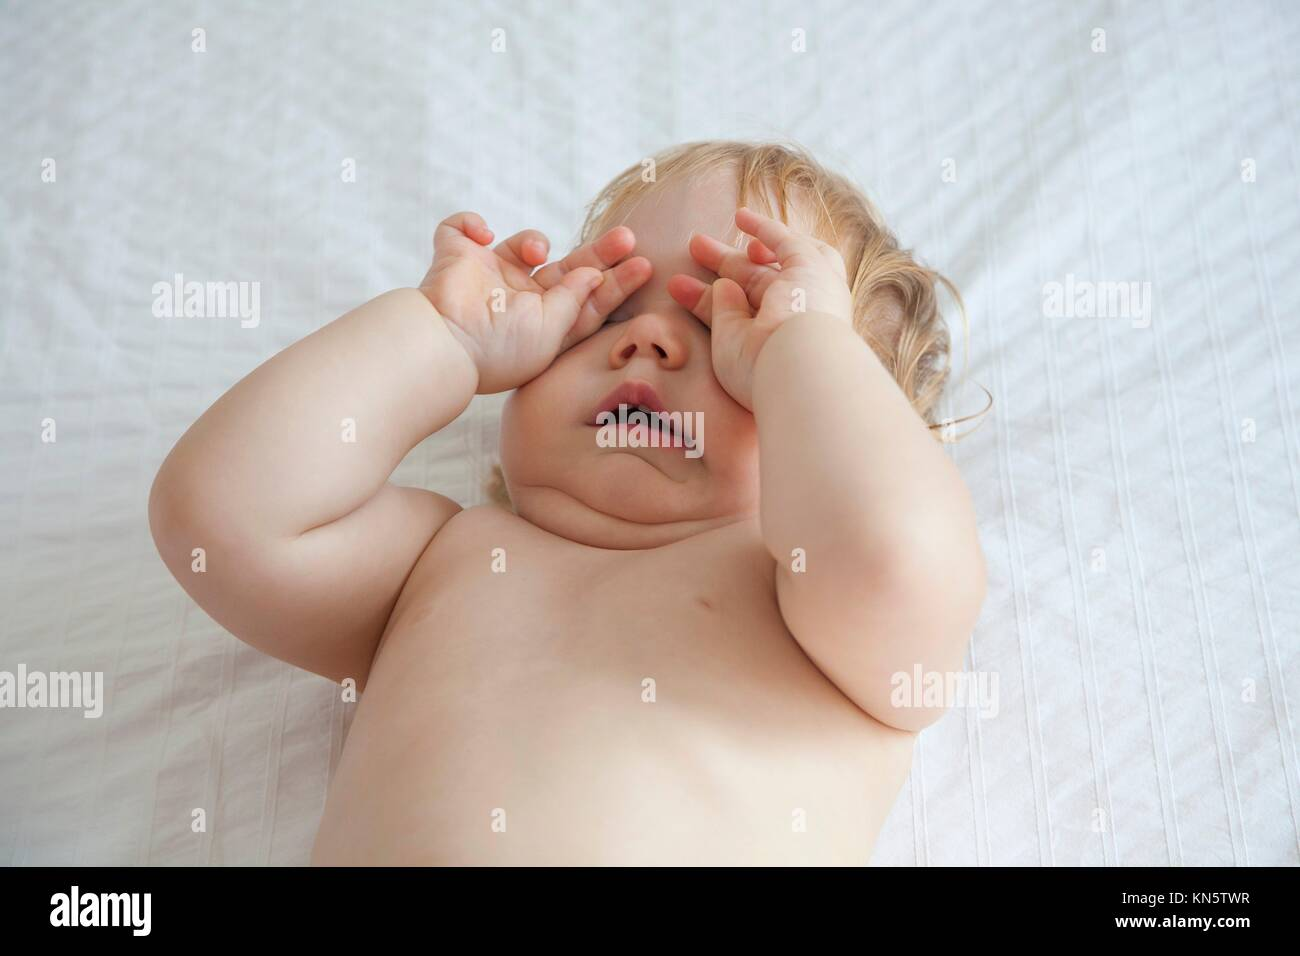 one year blonde baby diaper yawning and touching her eyes over white bedcover. - Stock Image